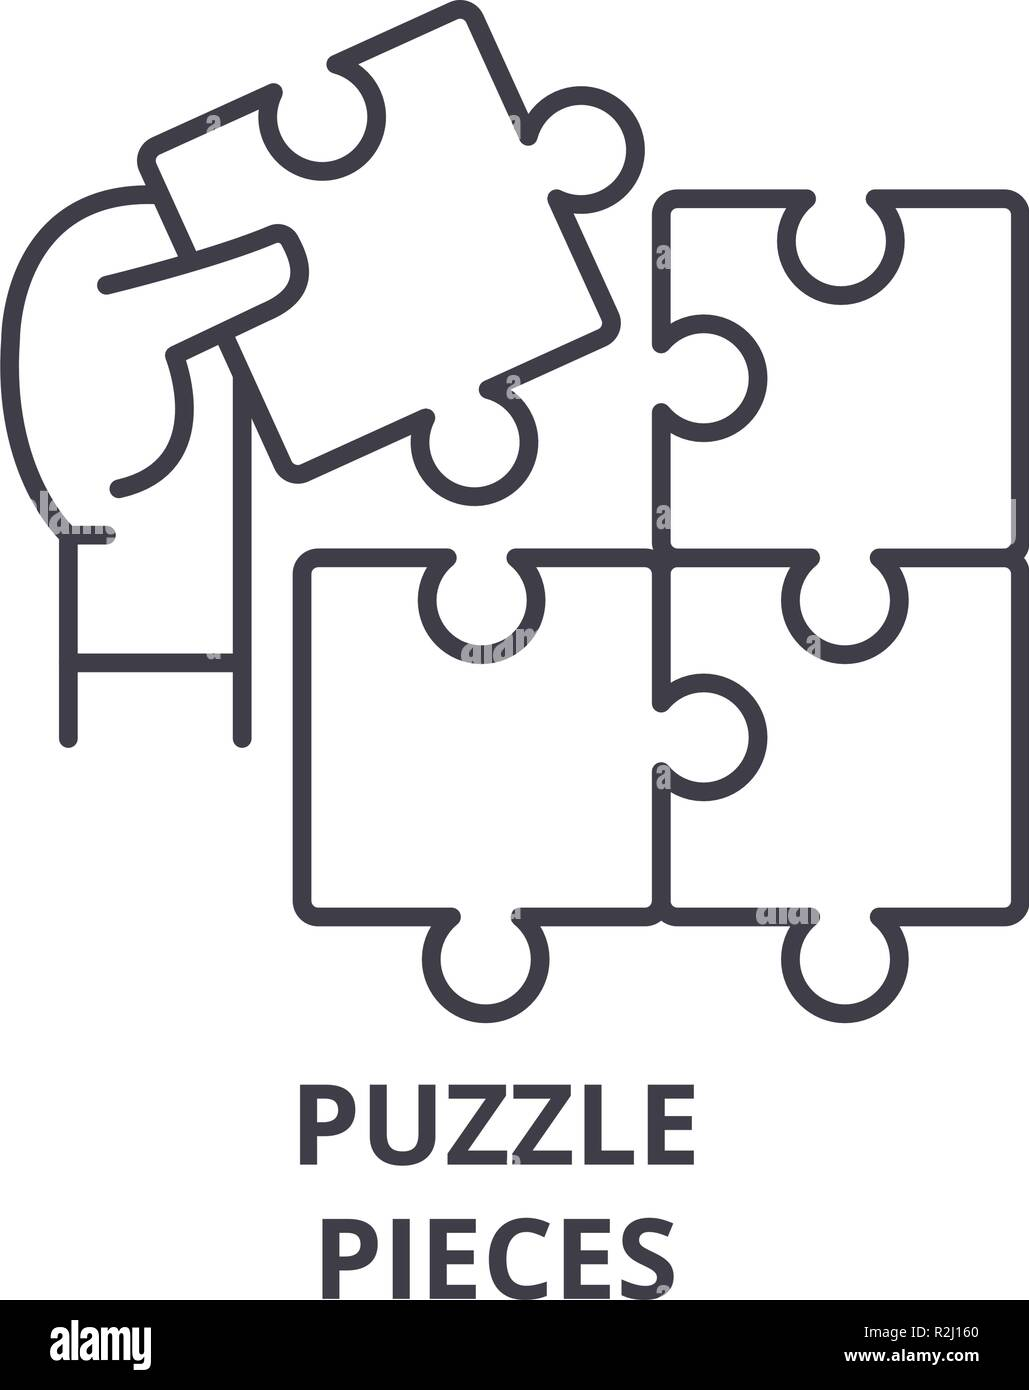 Puzzle pieces line icon concept. Puzzle pieces vector linear illustration, symbol, sign Stock Vector